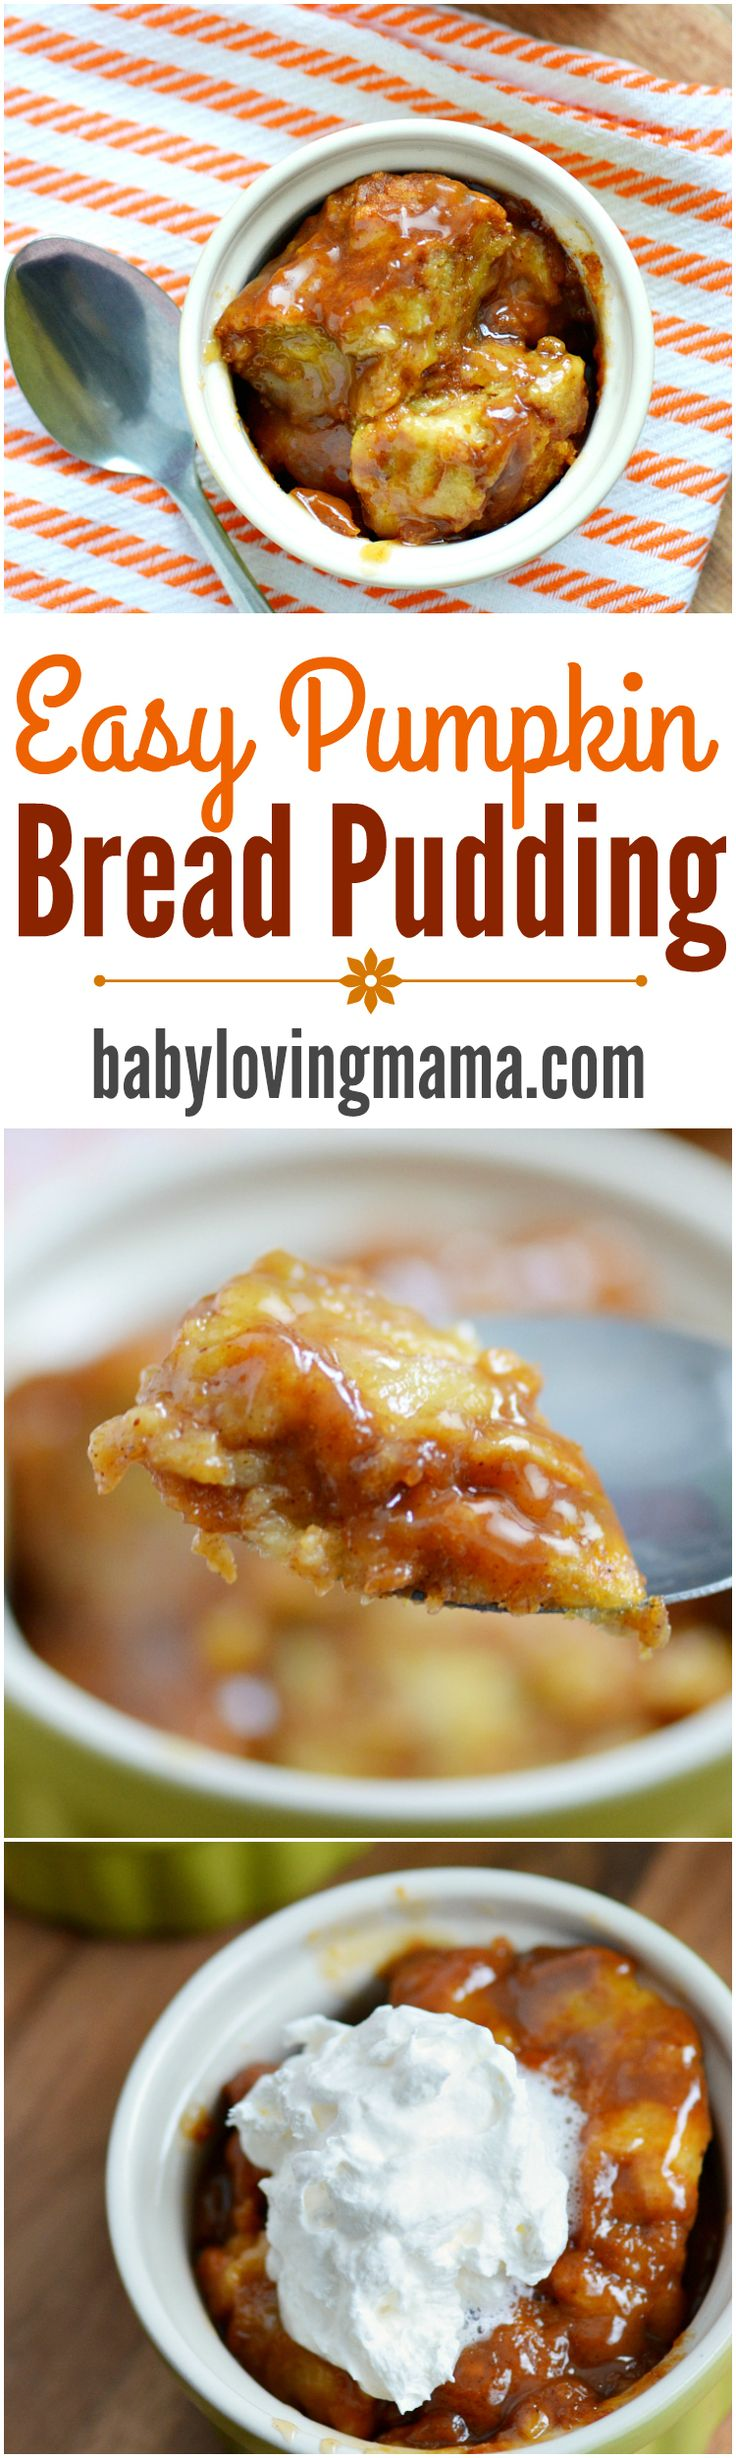 Easy Pumpkin Bread Pudding Recipe: Try this AWESOME bread pudding recipe and discover how simple it is to make bread pudding with brown sugar sauce! #MiniChefMondays